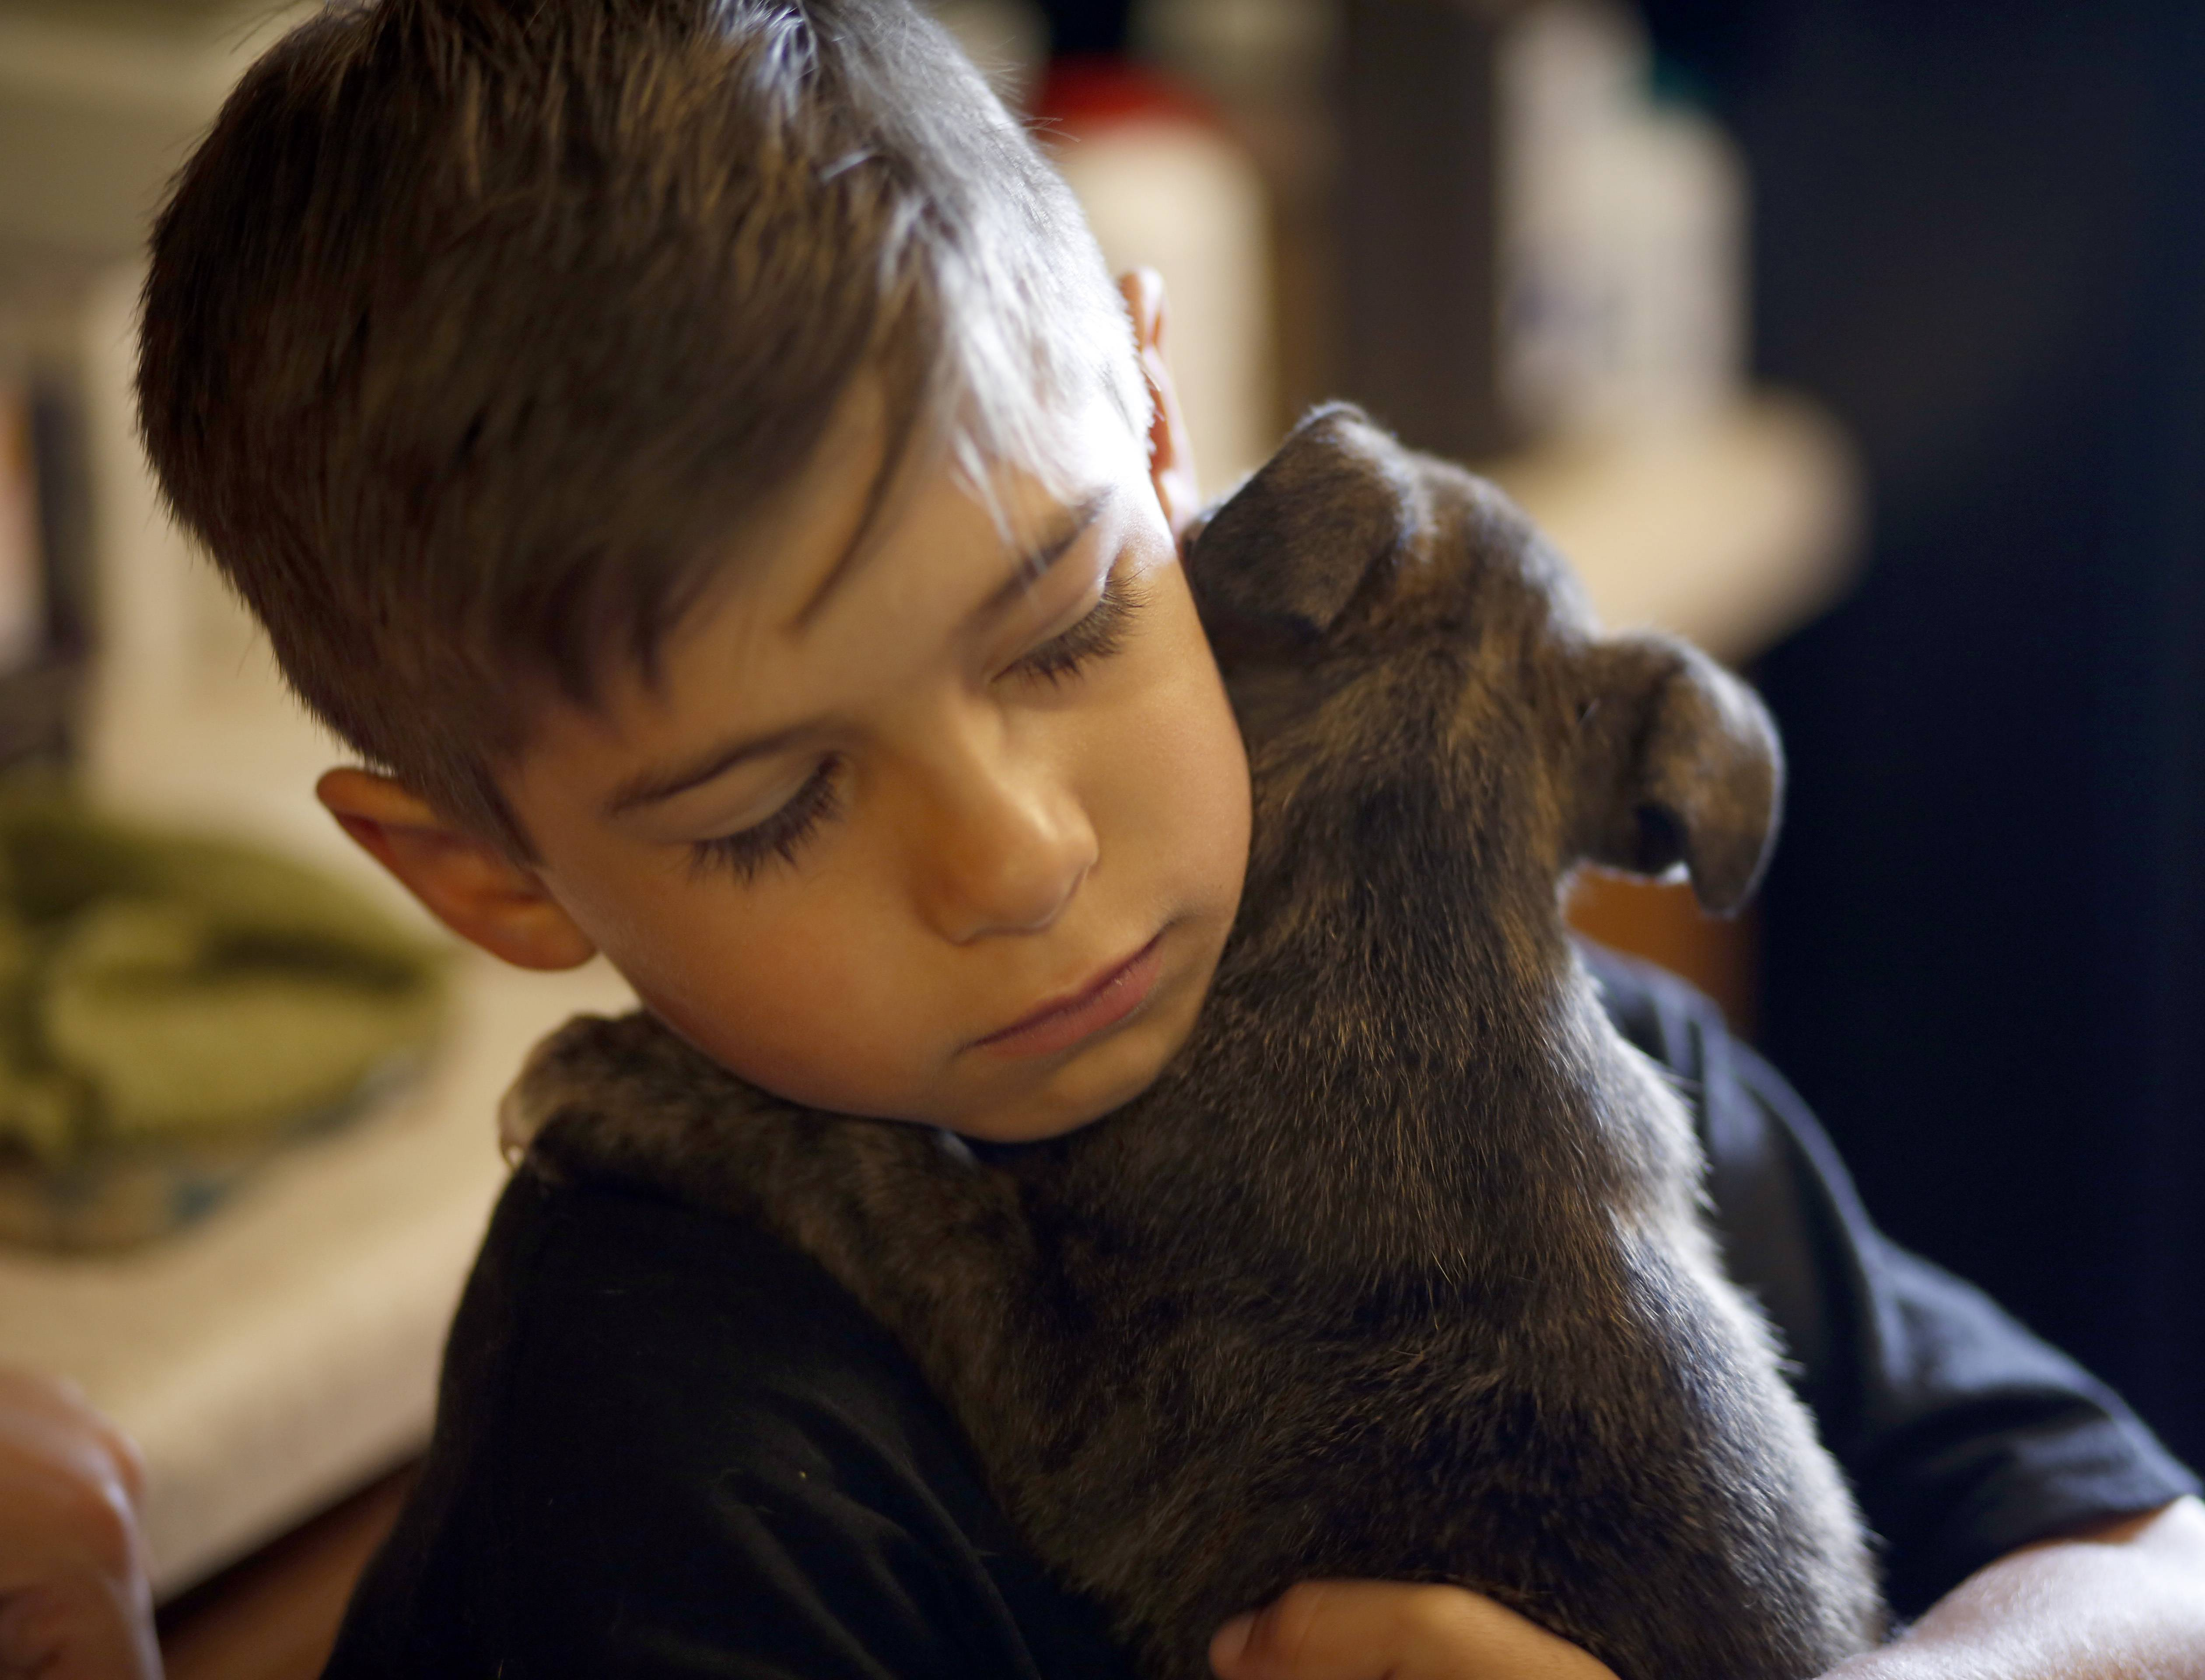 Michael Flanagan, 7, of Batavia holds one of the puppies that Casey's Safe Haven Horse and Dog Rescue brought back from a Tennessee shelter. His family provides foster care for rescued dogs before they are adopted.